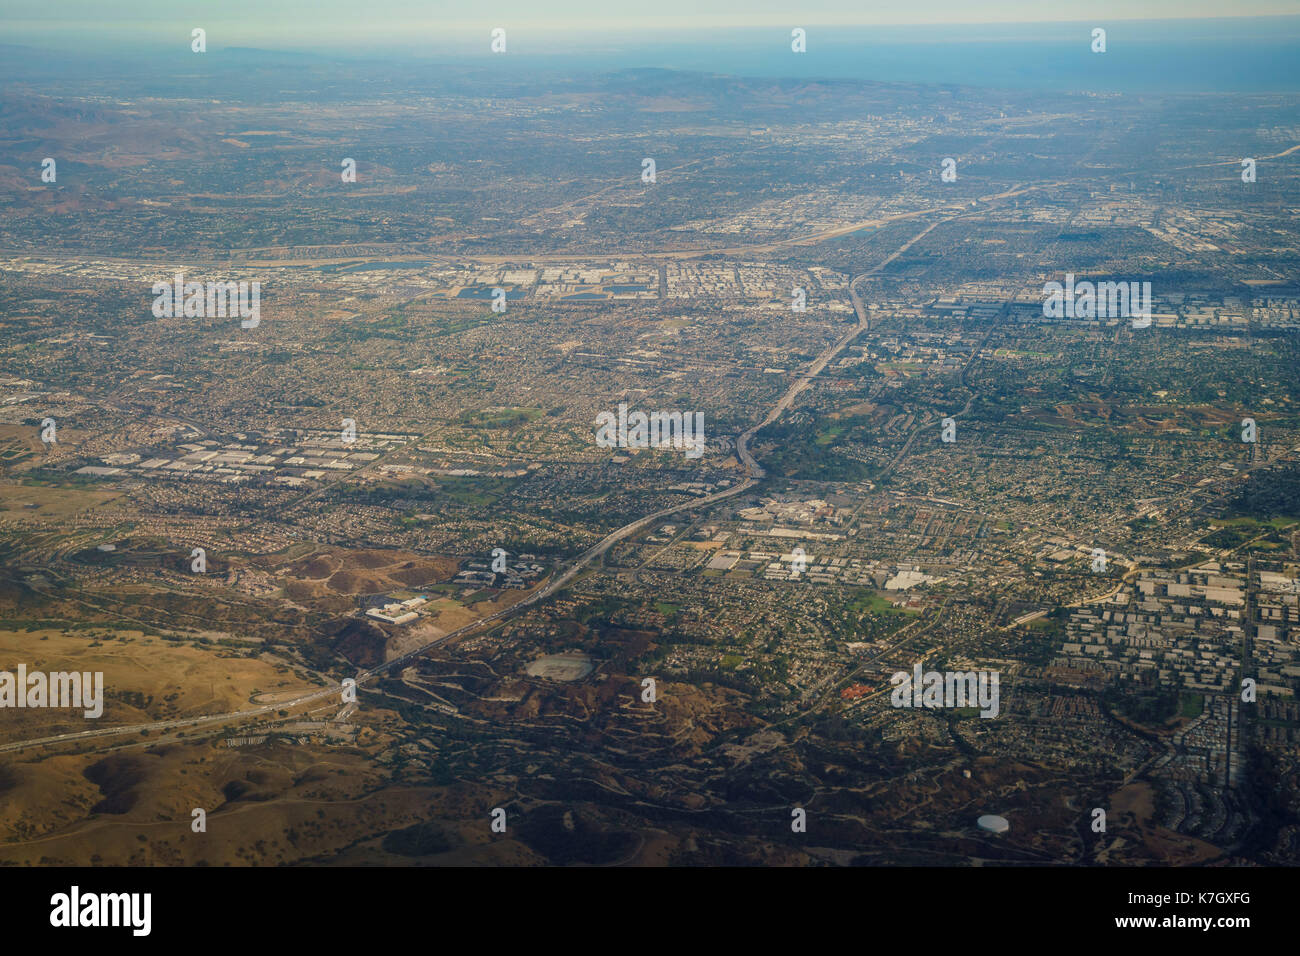 Aerial view of Brea and Fullerton, view from window seat in an airplane at California, U.S.A. - Stock Image